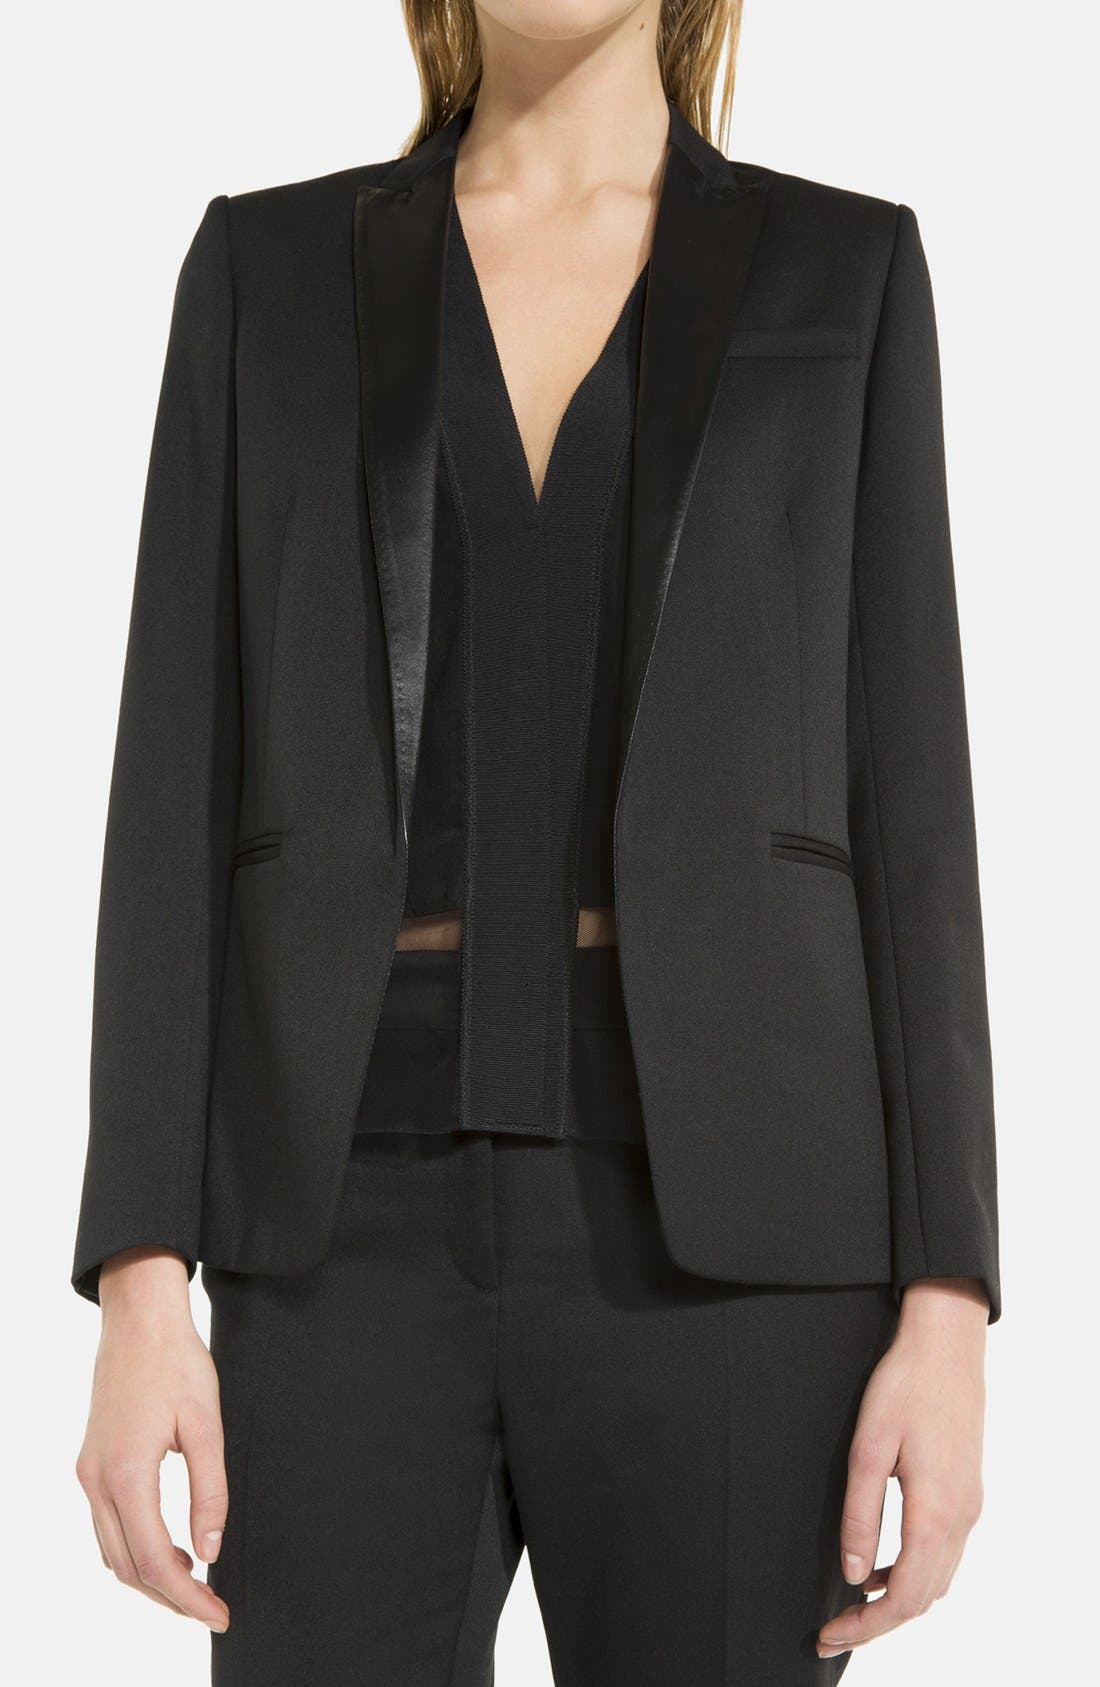 'Virtuose' Blazer,                             Alternate thumbnail 3, color,                             001